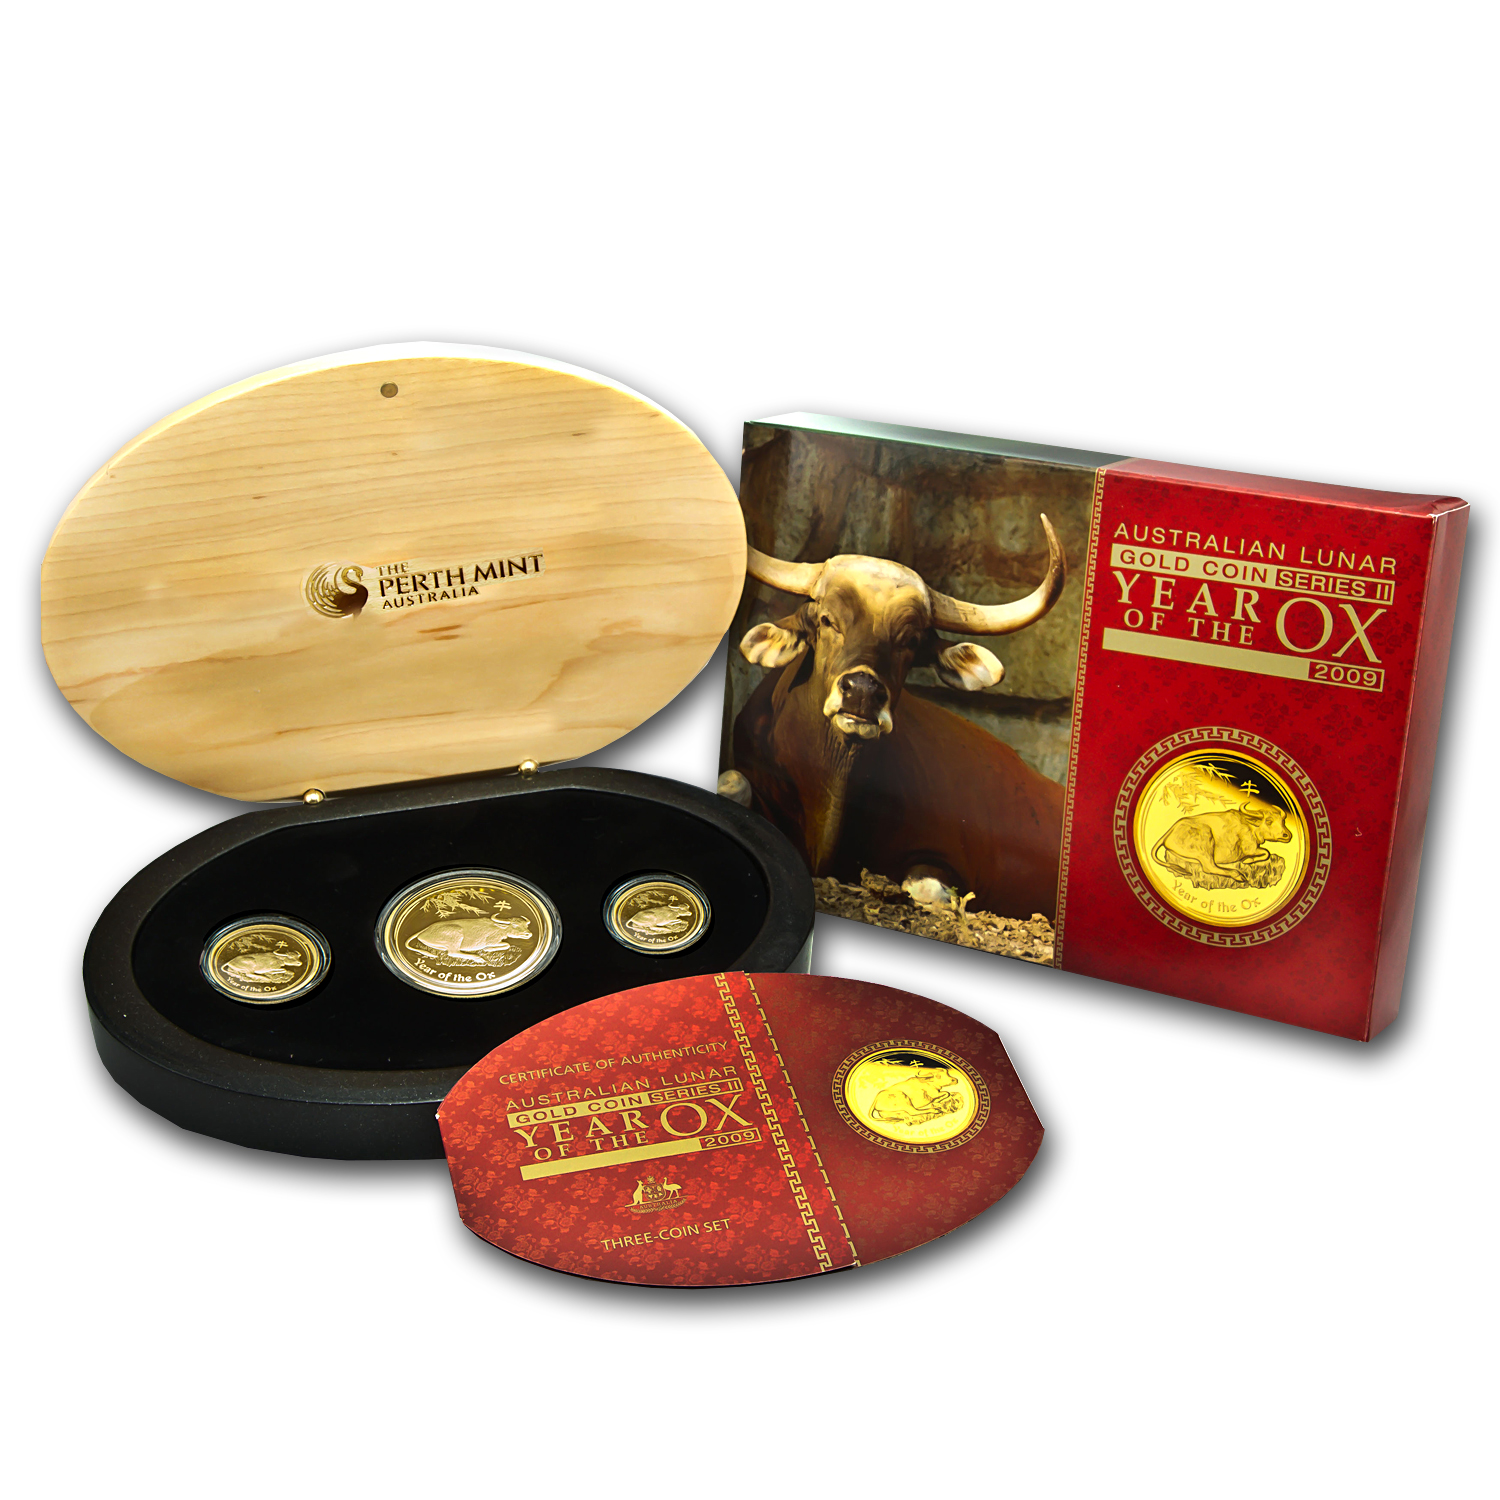 2009 3-Coin Proof Gold Lunar Year of the Ox (Series II)